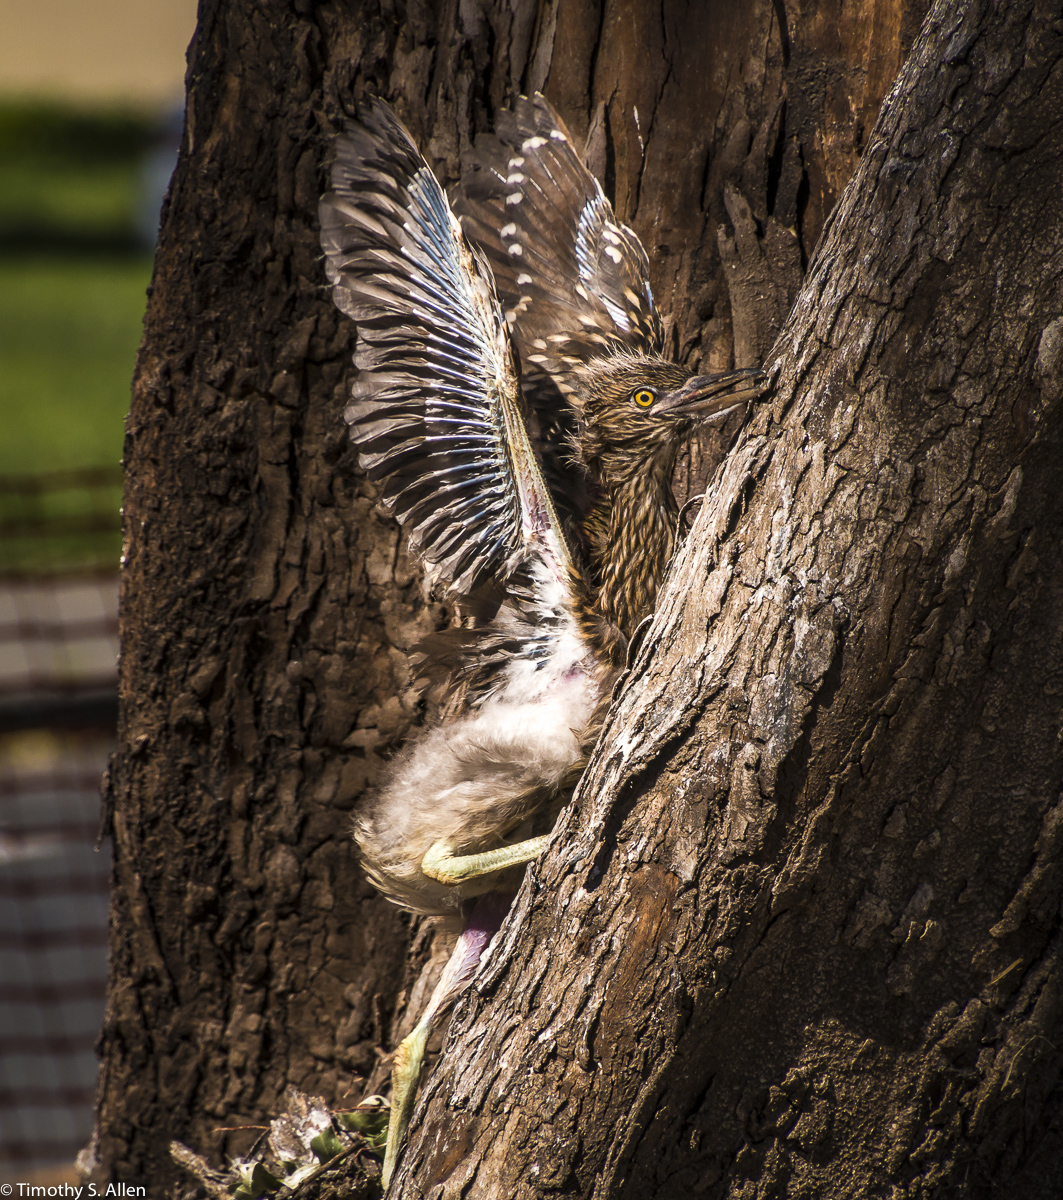 The Same Black Crowed Night Heron Chick Tries to Return to the Nest After Falling Out of the Tree. W. 9th St. Santa Rosa, CA, U.S.A. April 28, 20